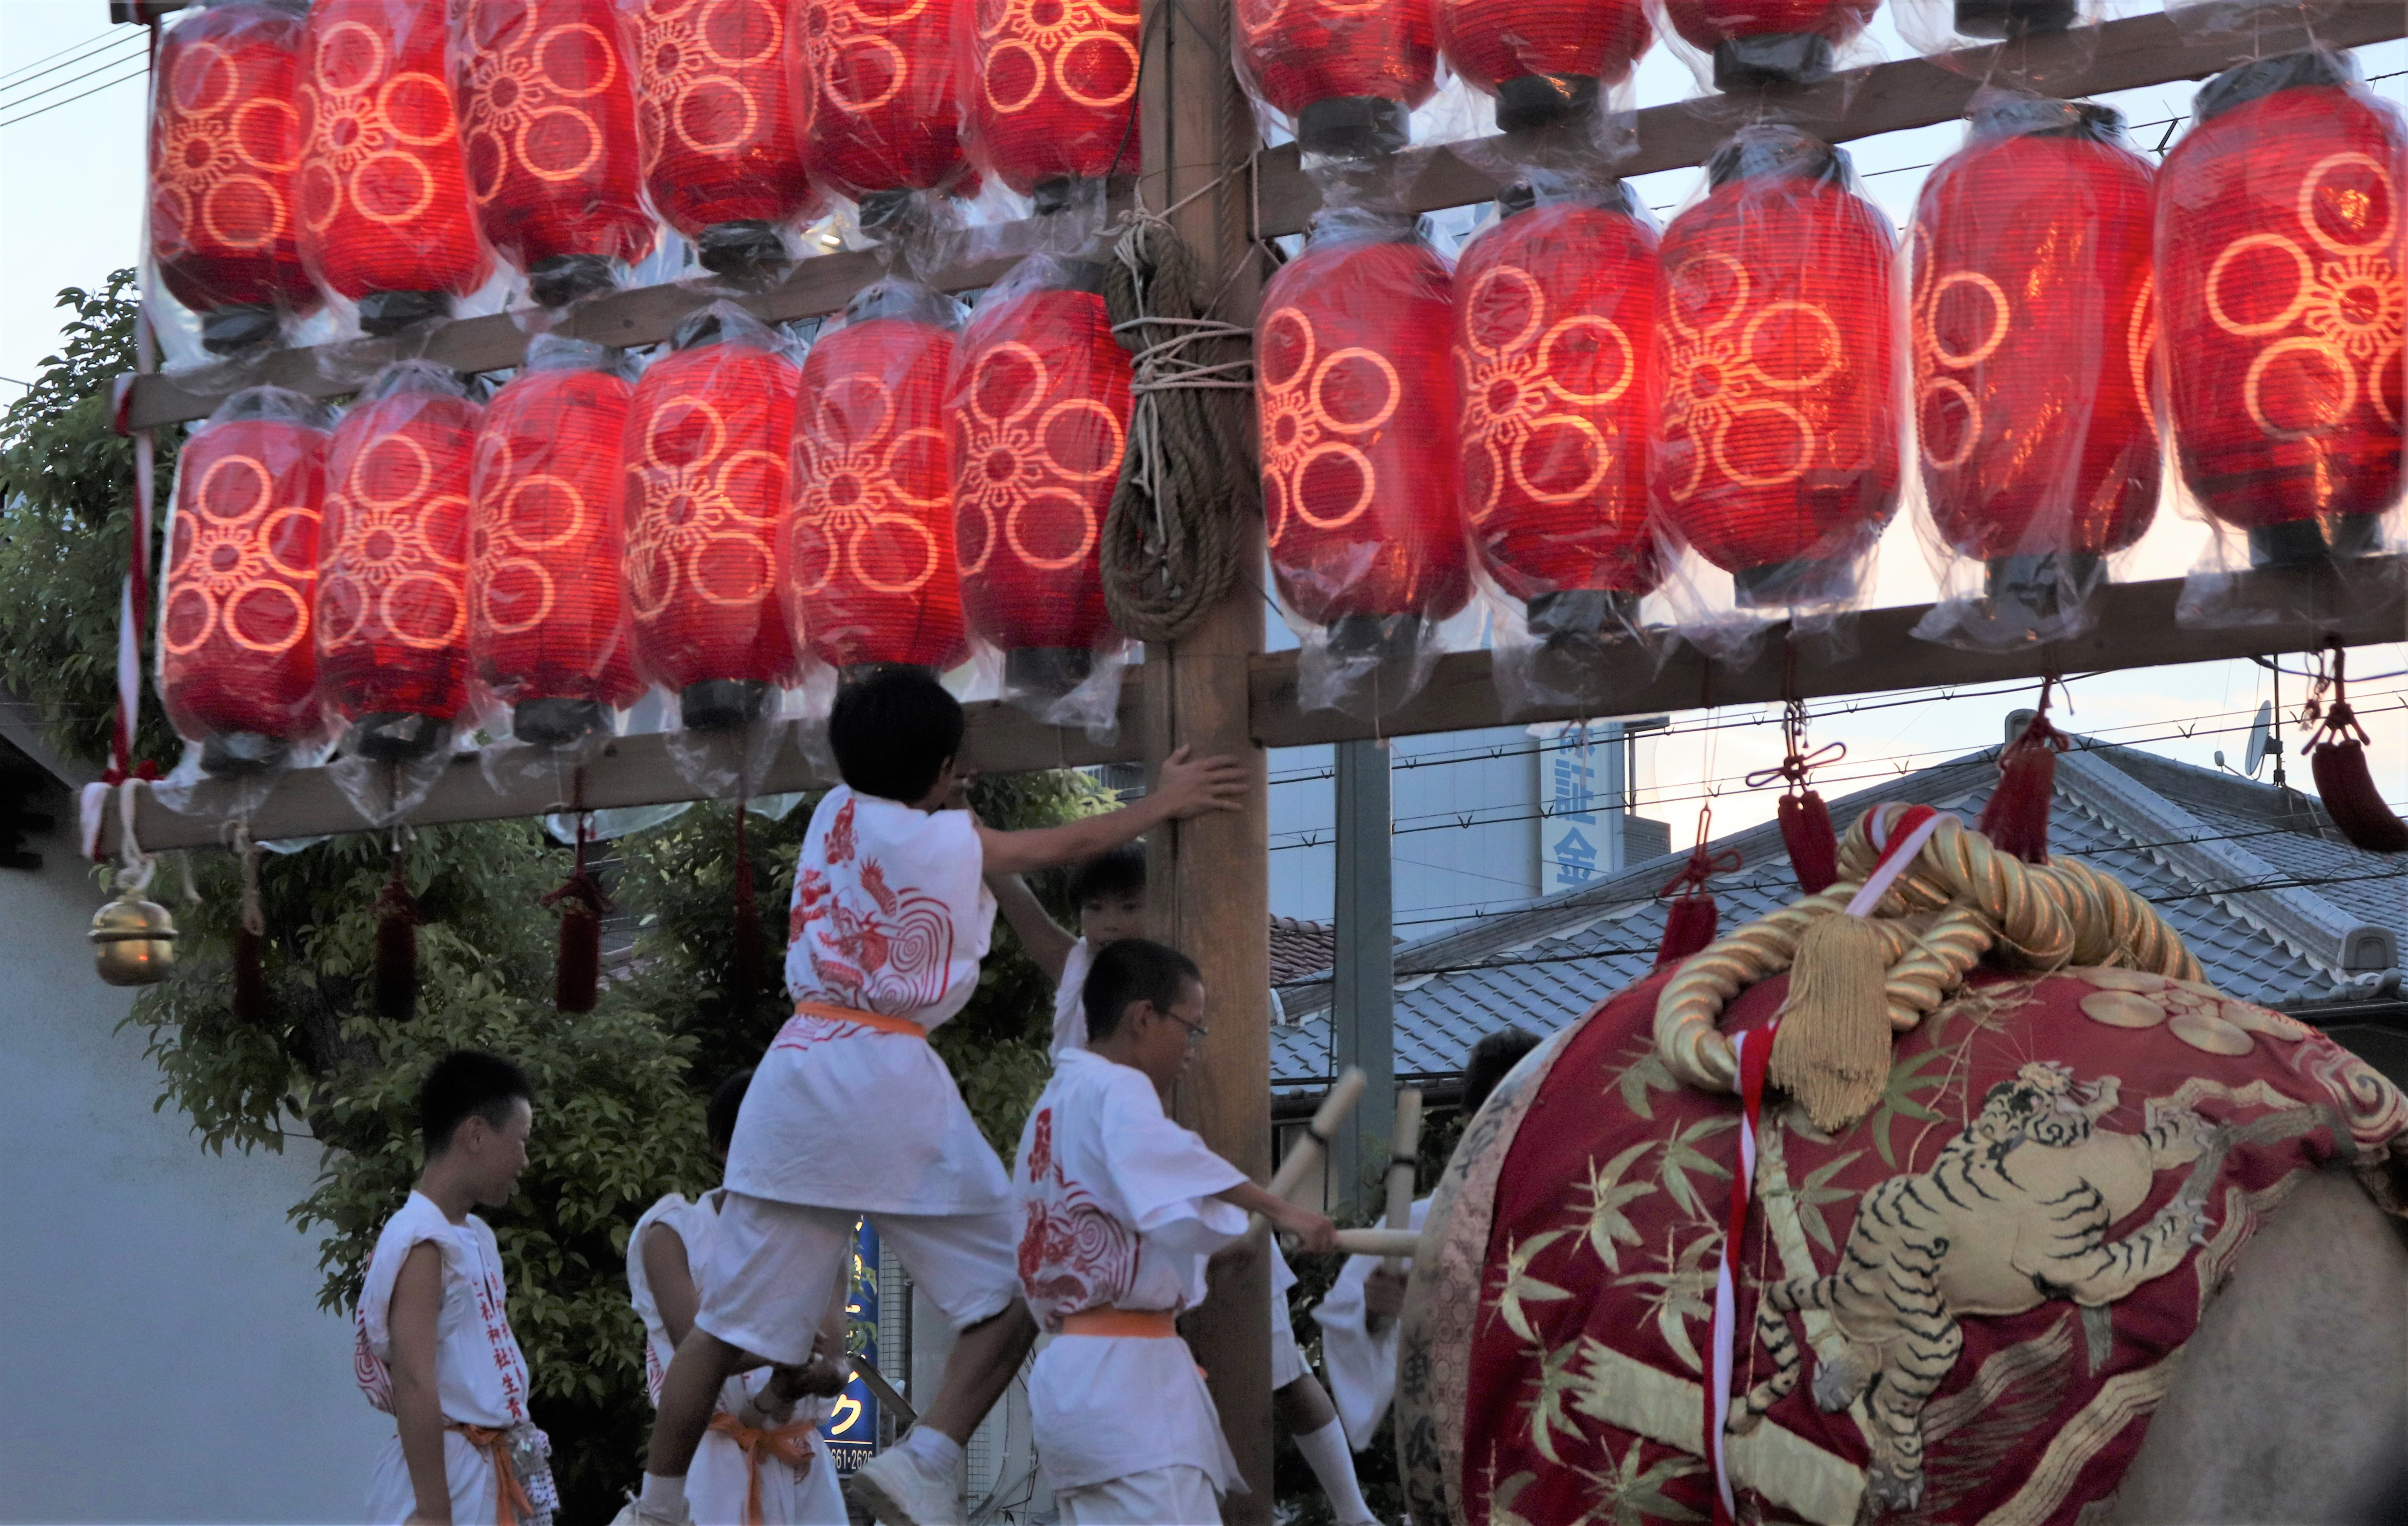 drum tied to the daigaku festival pole during daigaku festival in Osaka